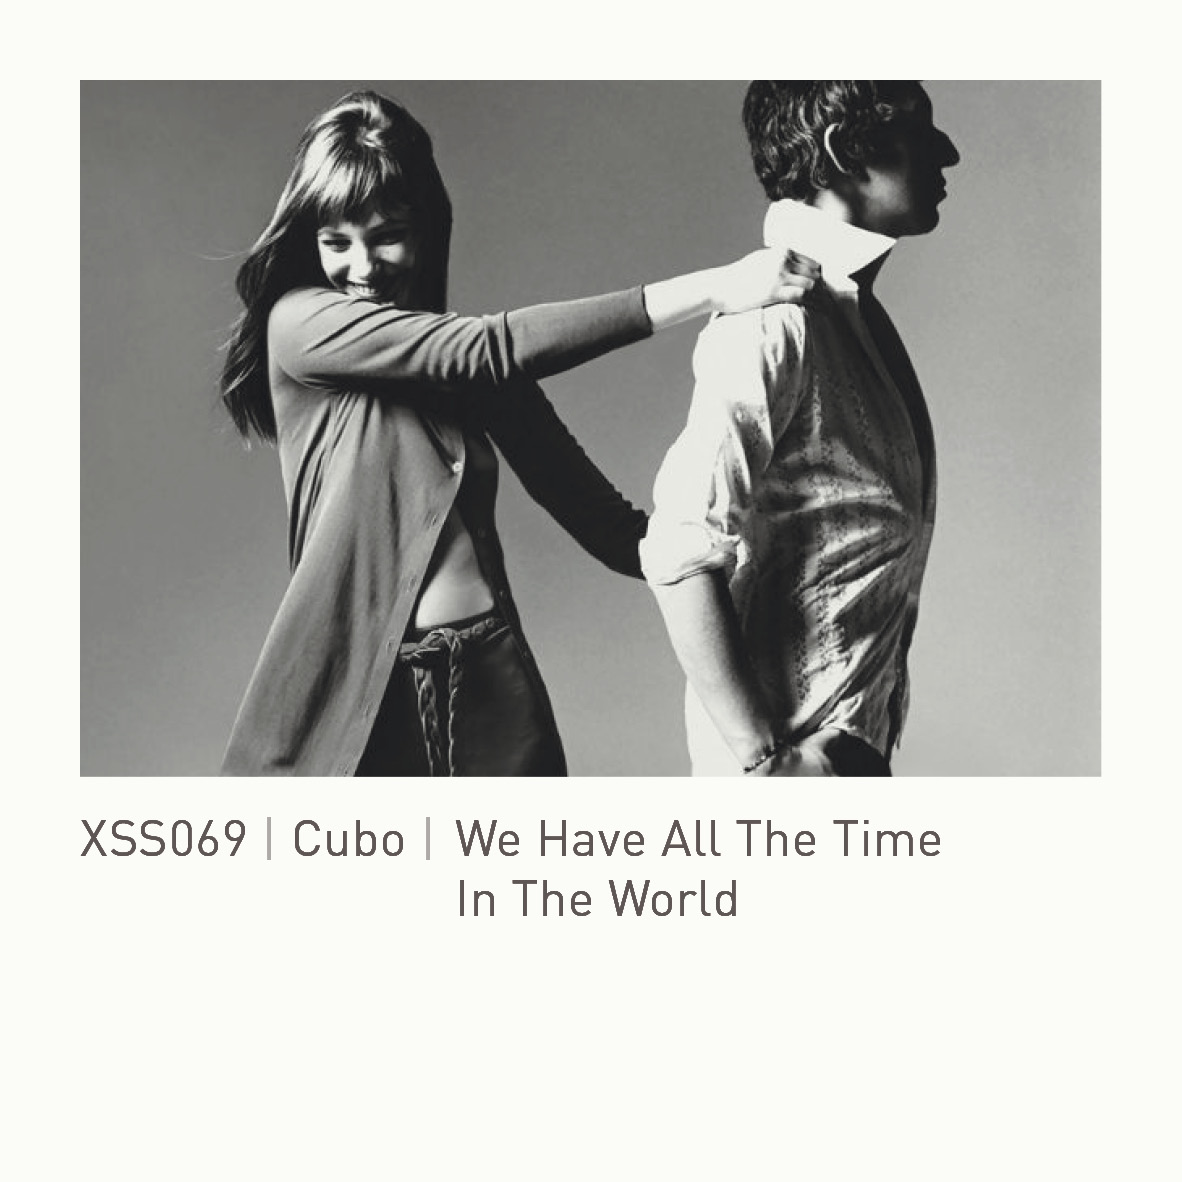 XSS069 | Cubo | We Have All The Time In The World